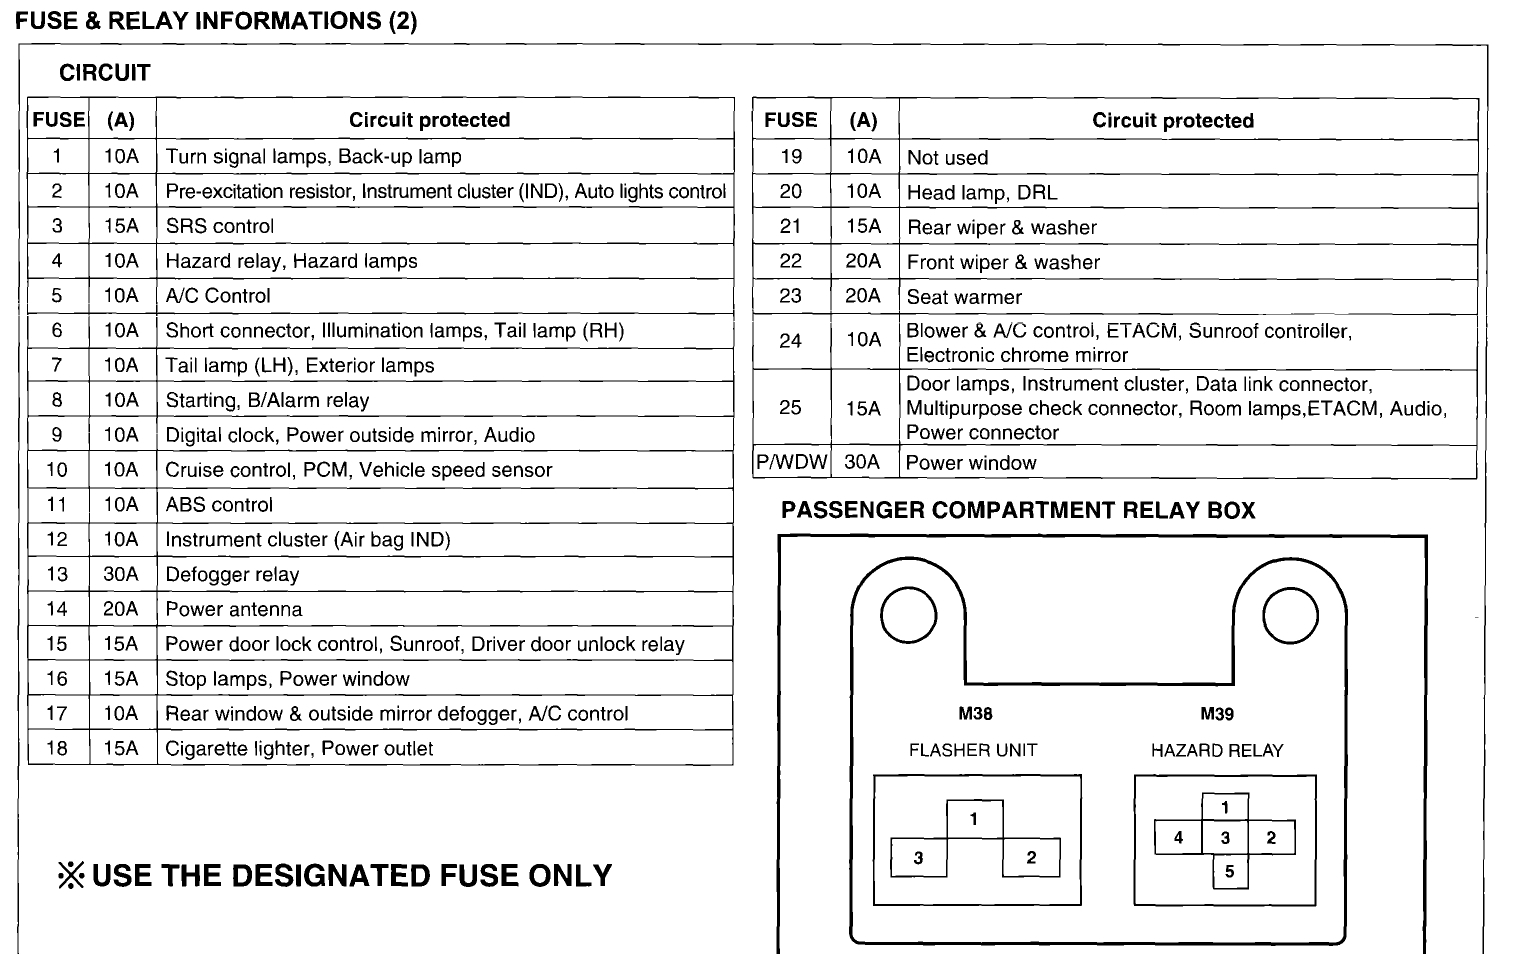 original signal light wiring diagram 2002 hyundai elantra 2006 hyundai hyundai elantra wiring diagram at mifinder.co